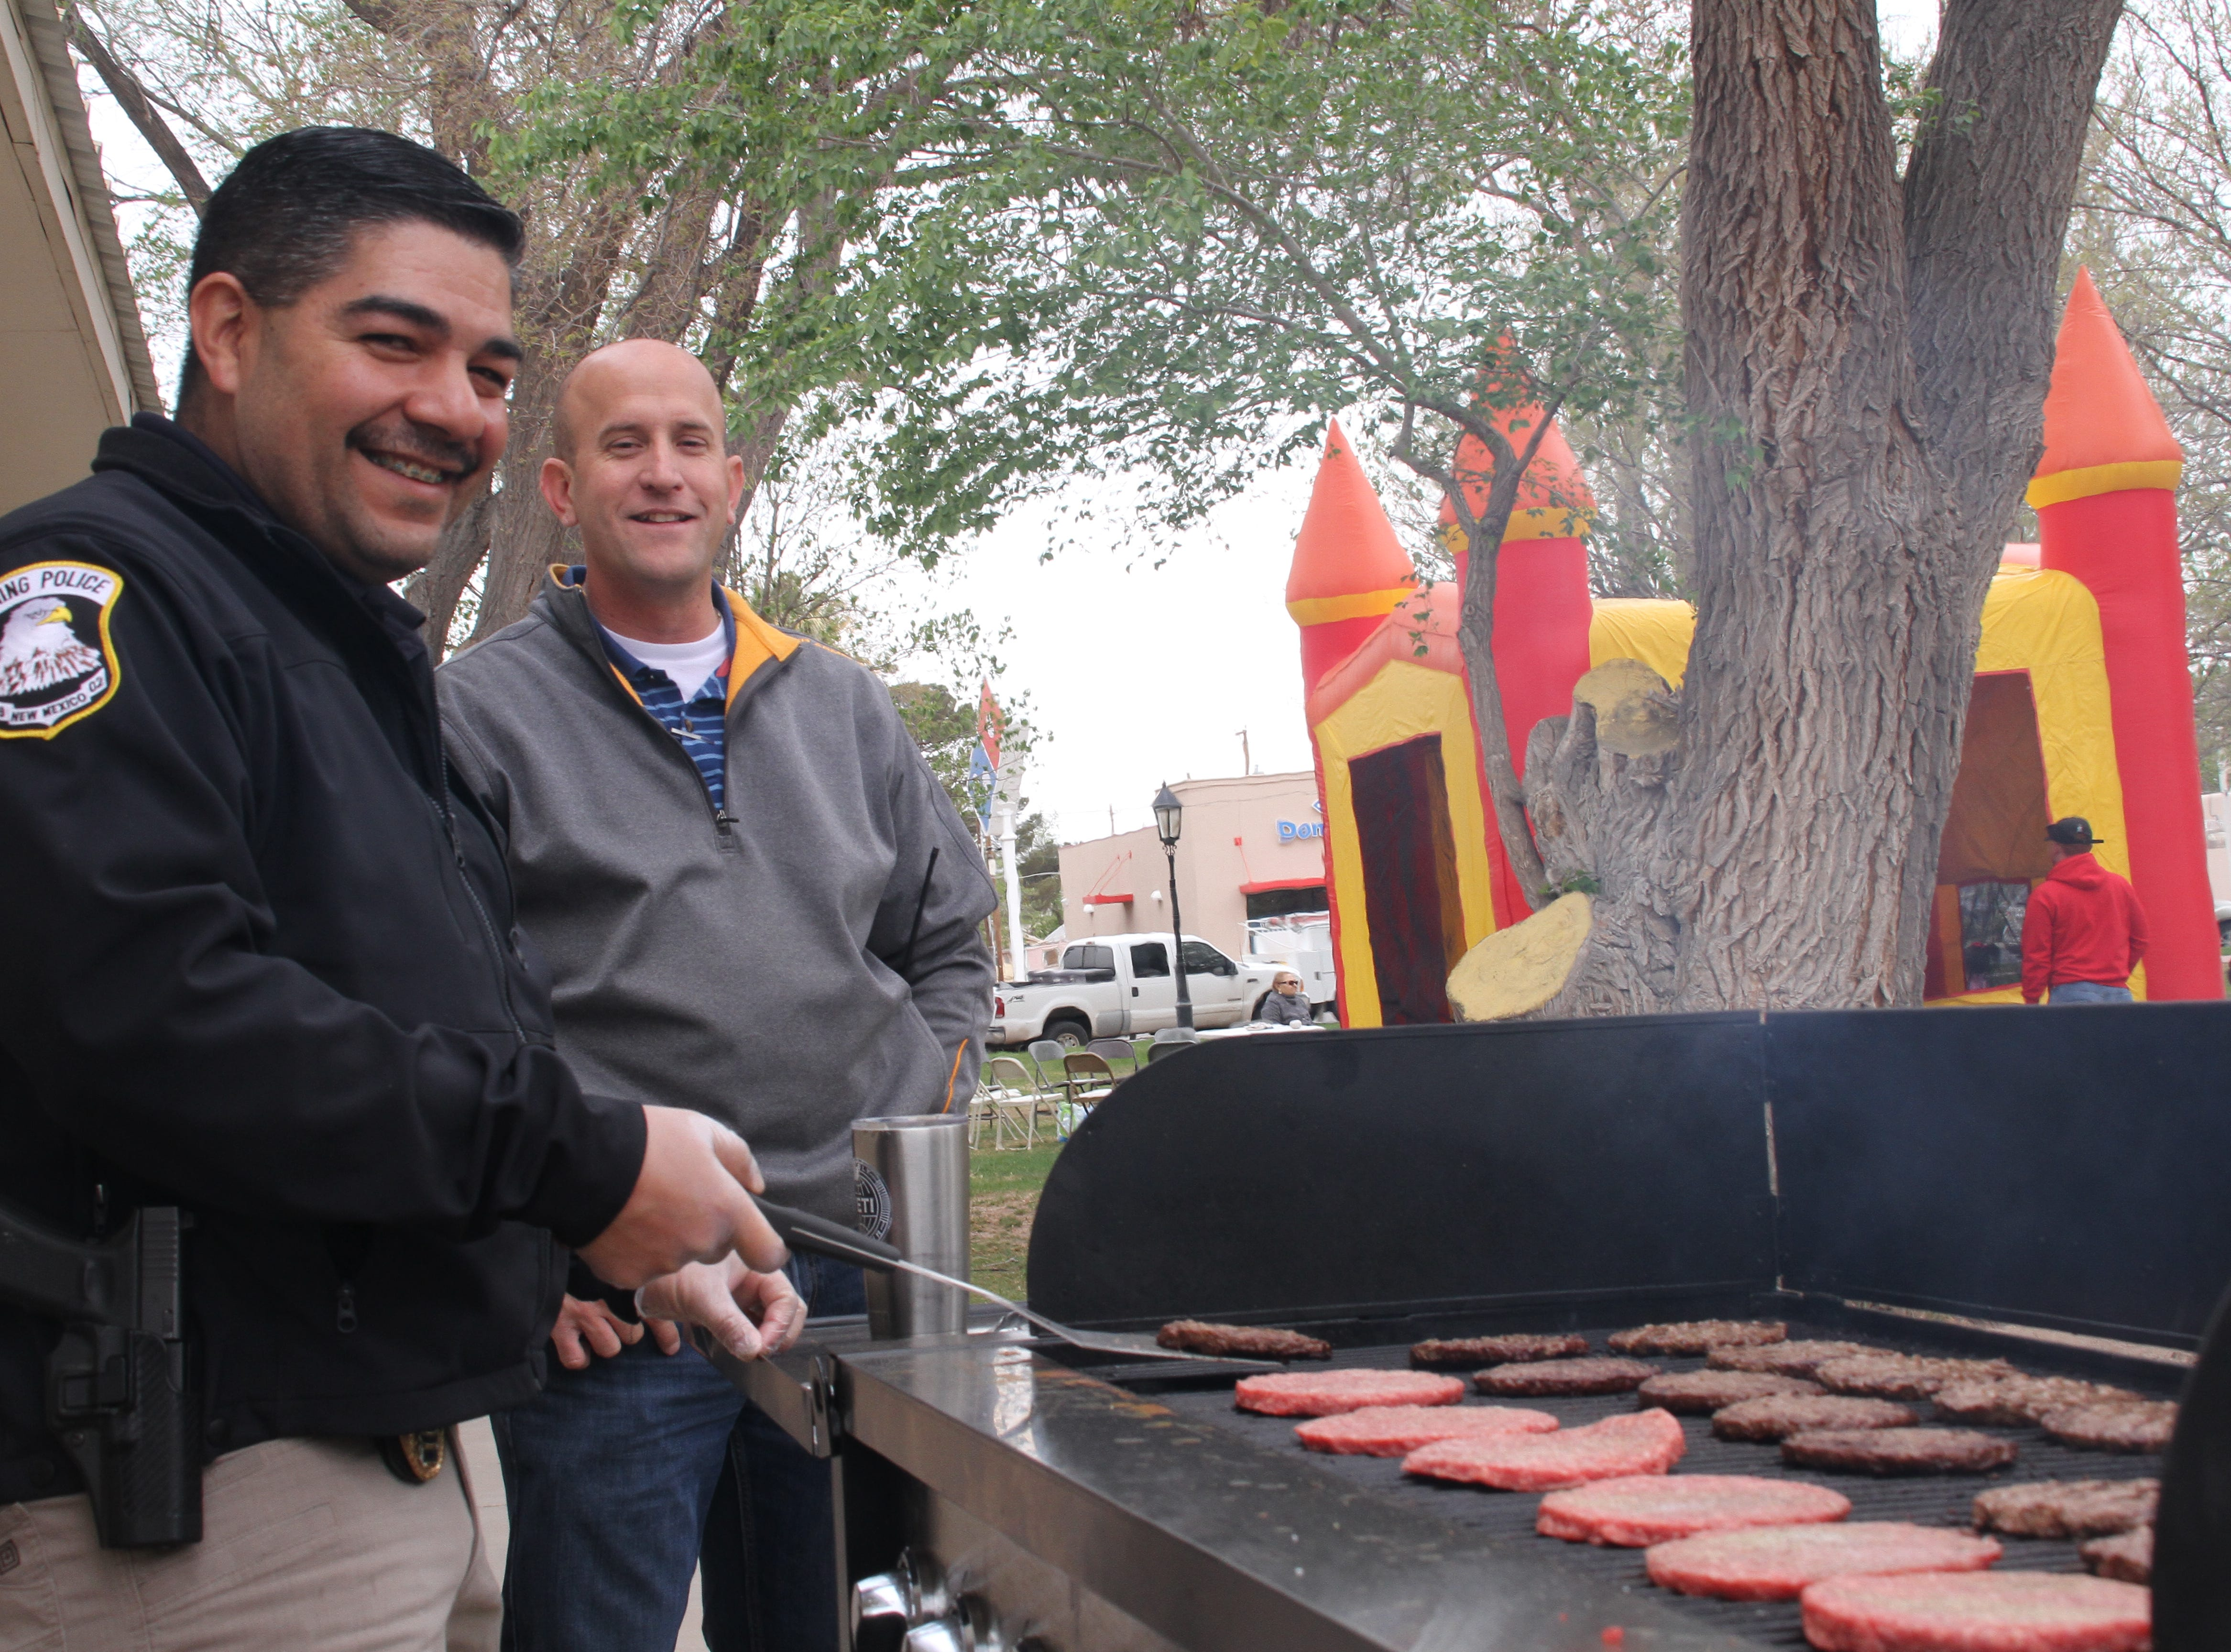 From left, Deming Assistant Police Chief Alex Valdespino and Chief Bobby Orozco  prepping and flipping burgers for approximately 630 attendees.